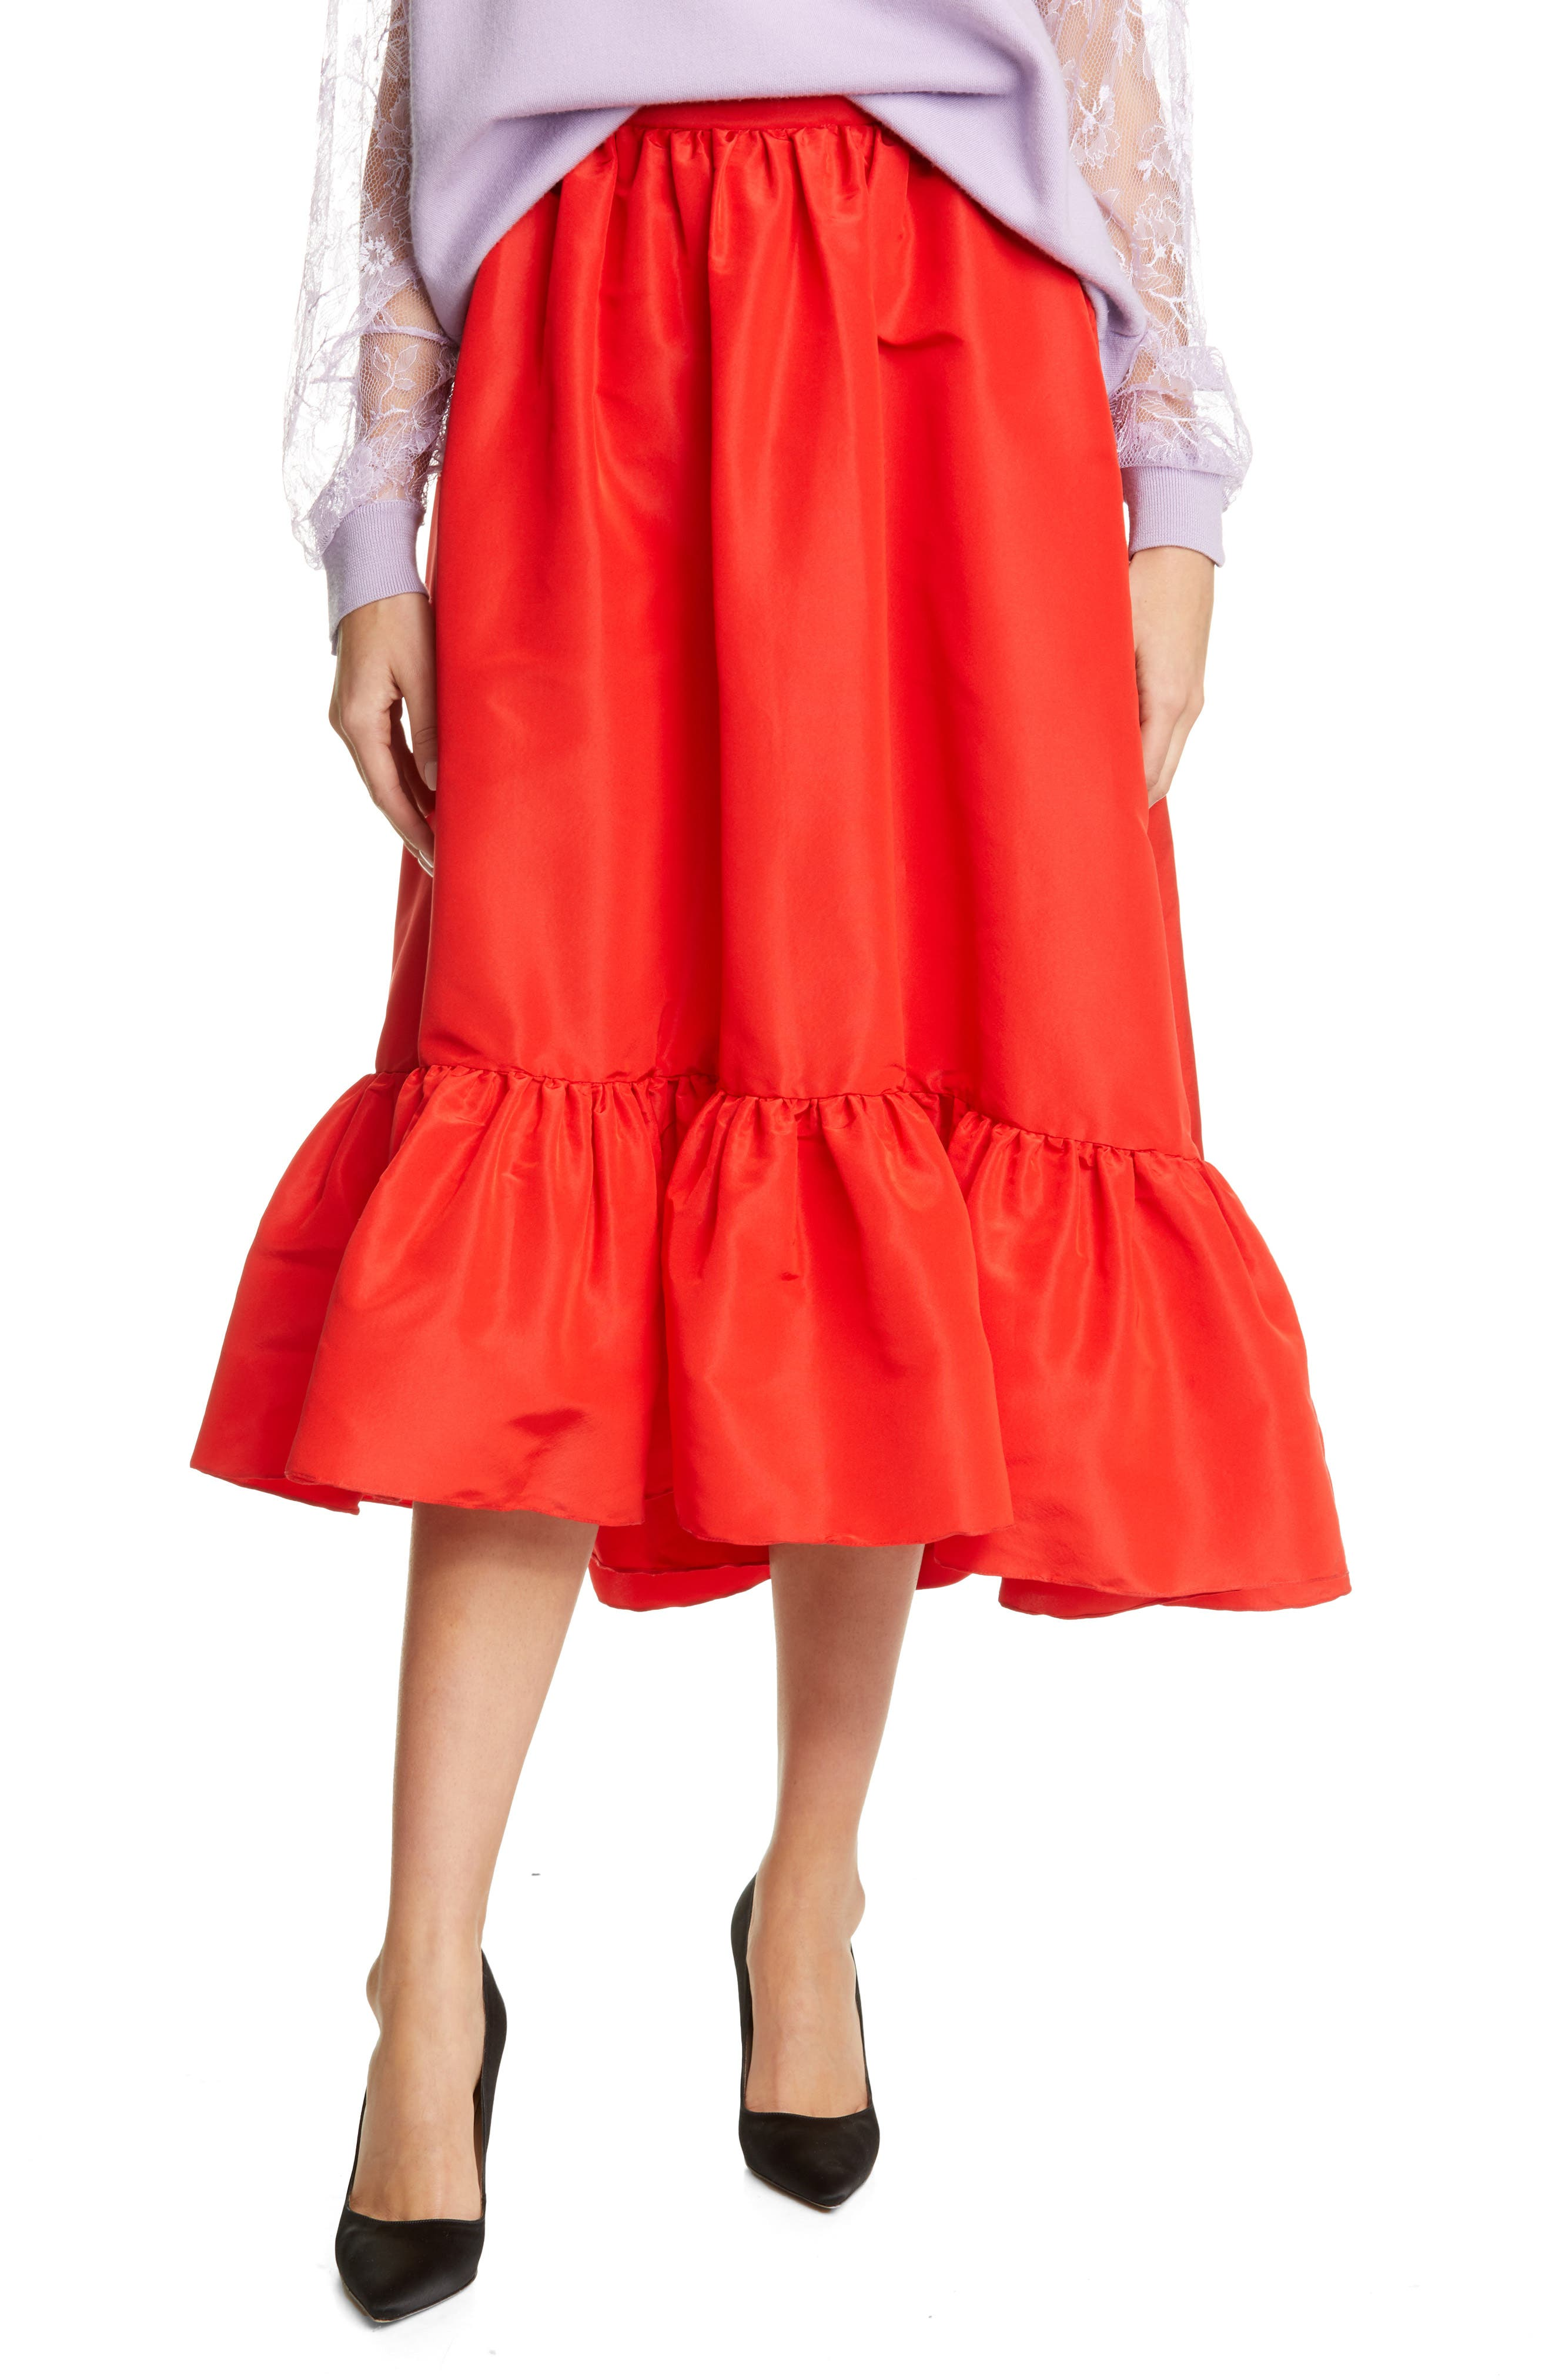 Adam Lippes wanted his latest collection to have \\\'joy, fun, and color\\\' and this silk-faille skirt with a high/low ruffled hem checks everything on that list. Style Name: Adam Lippes Ruffle Hem Silk Faille Midi Skirt. Style Number: 6005835. Available in stores.